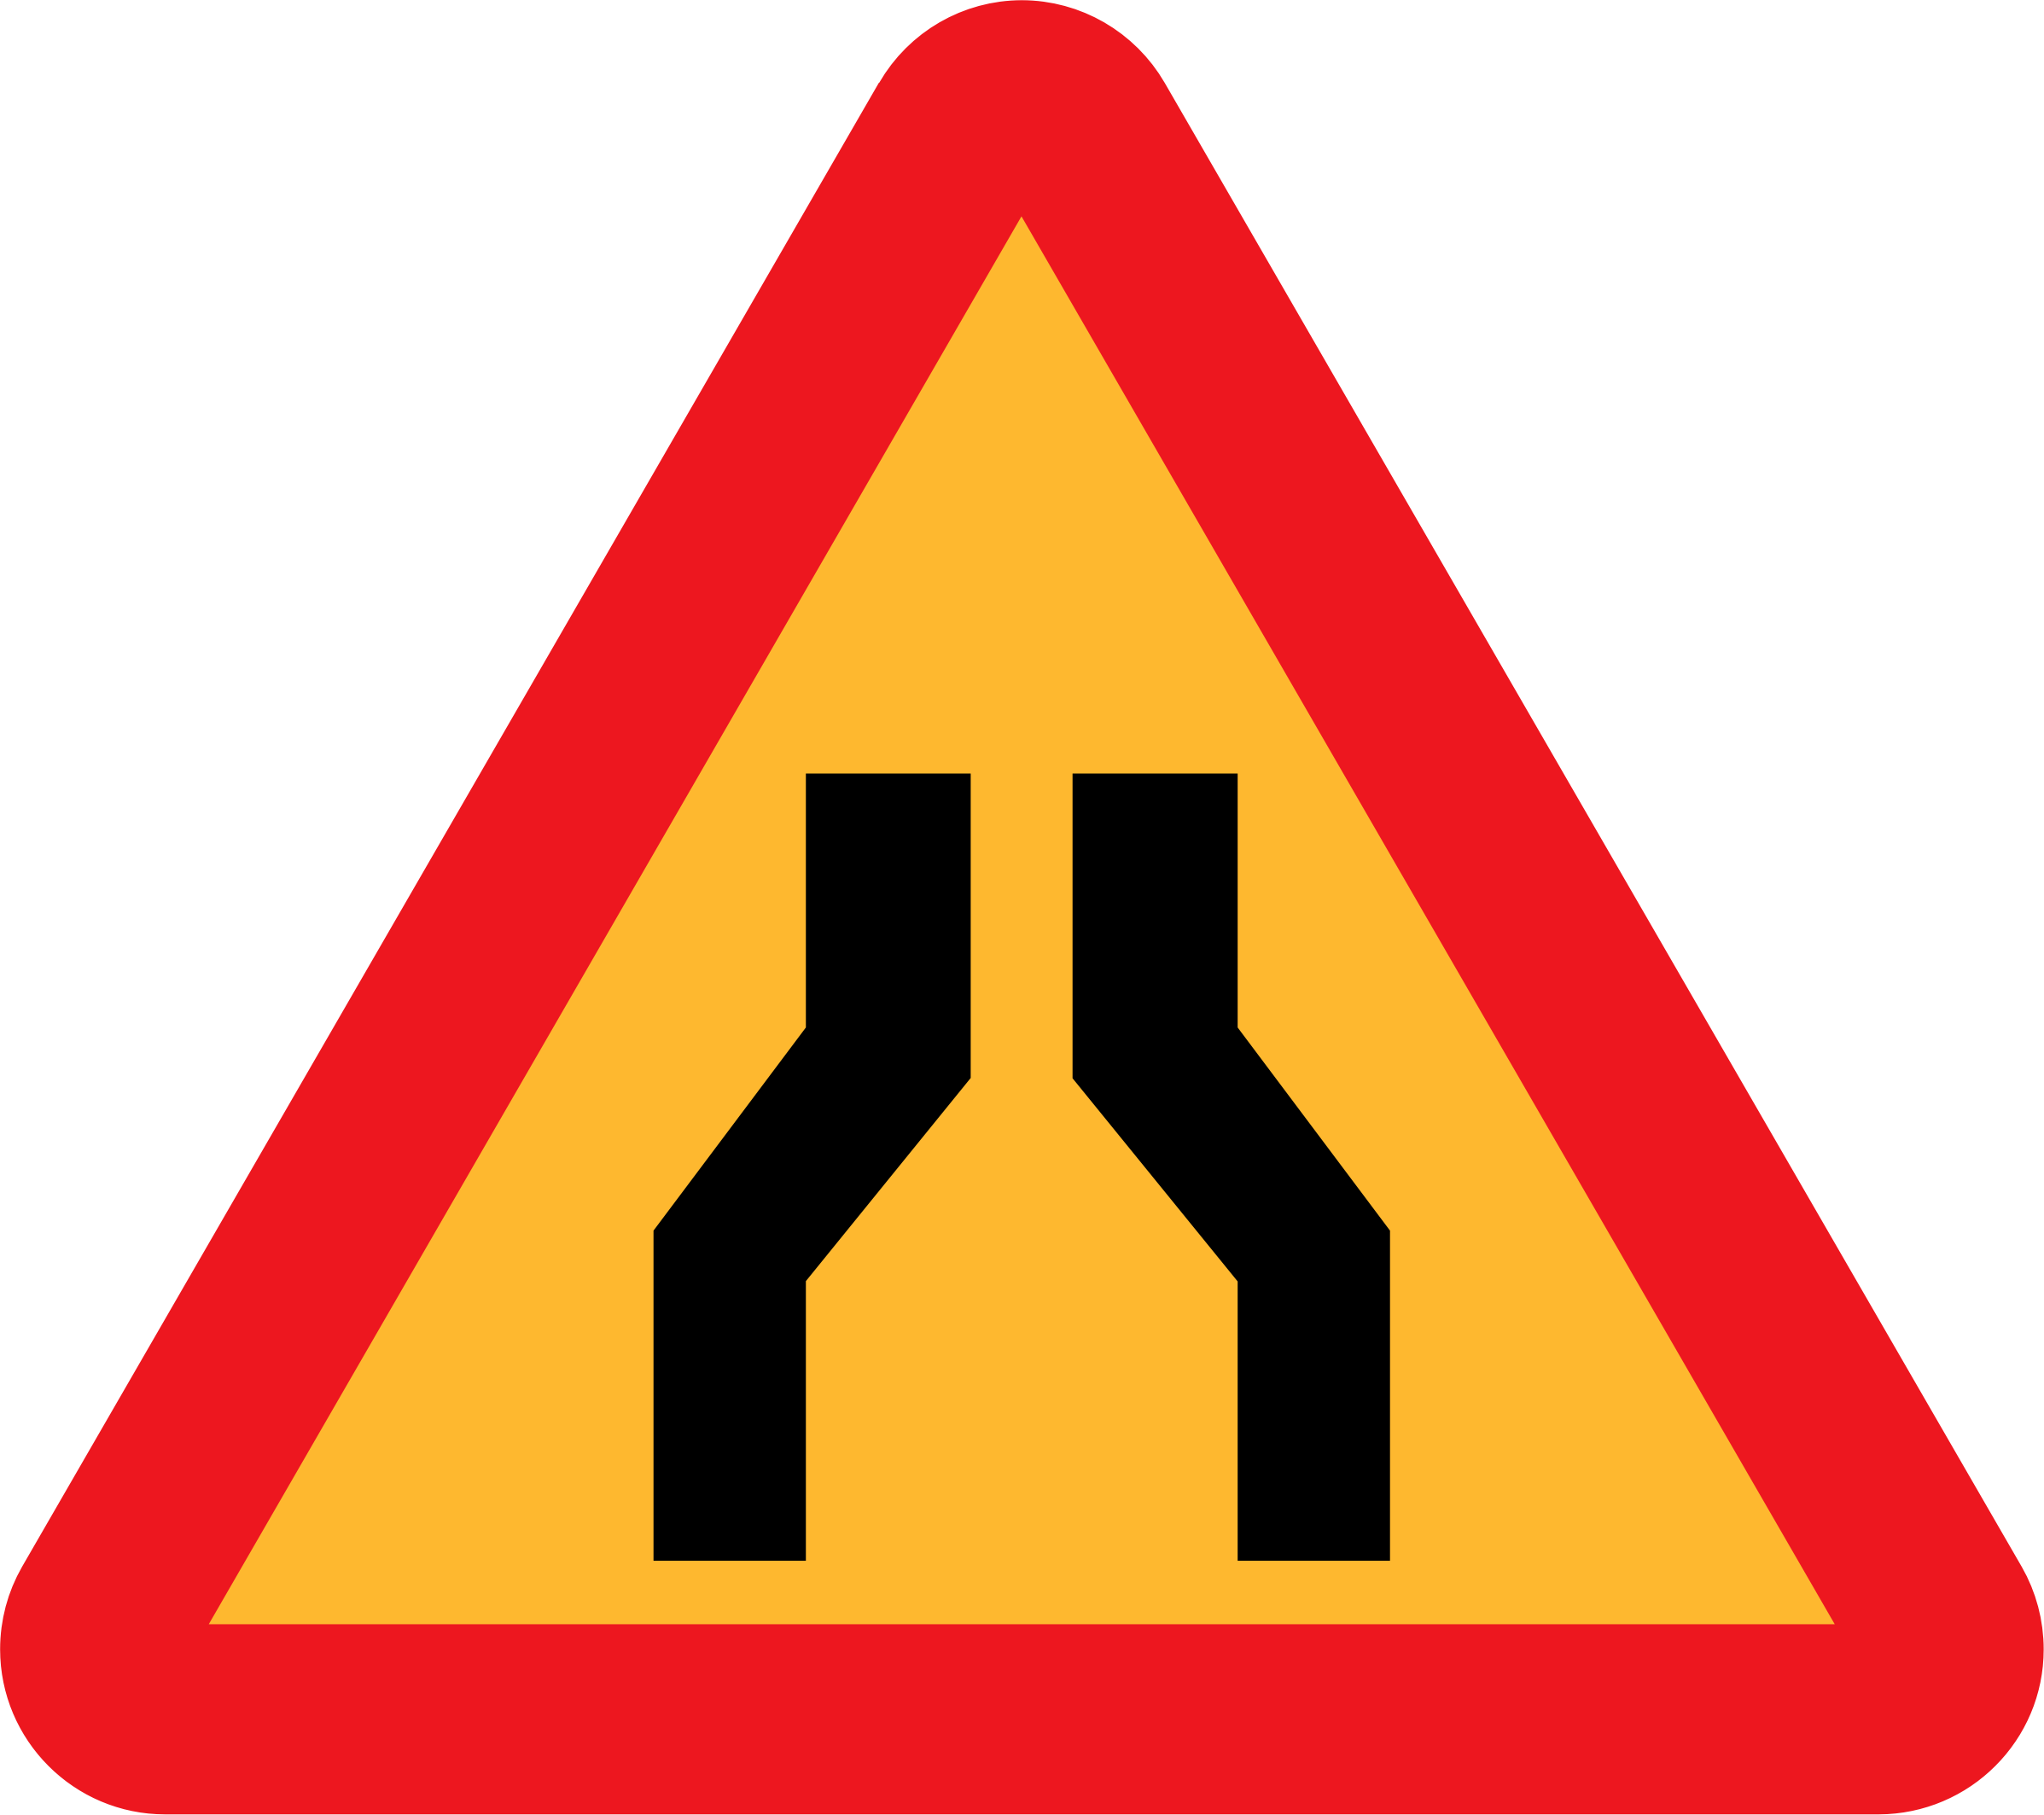 Roadlayout Sign 8 by ryanlerch